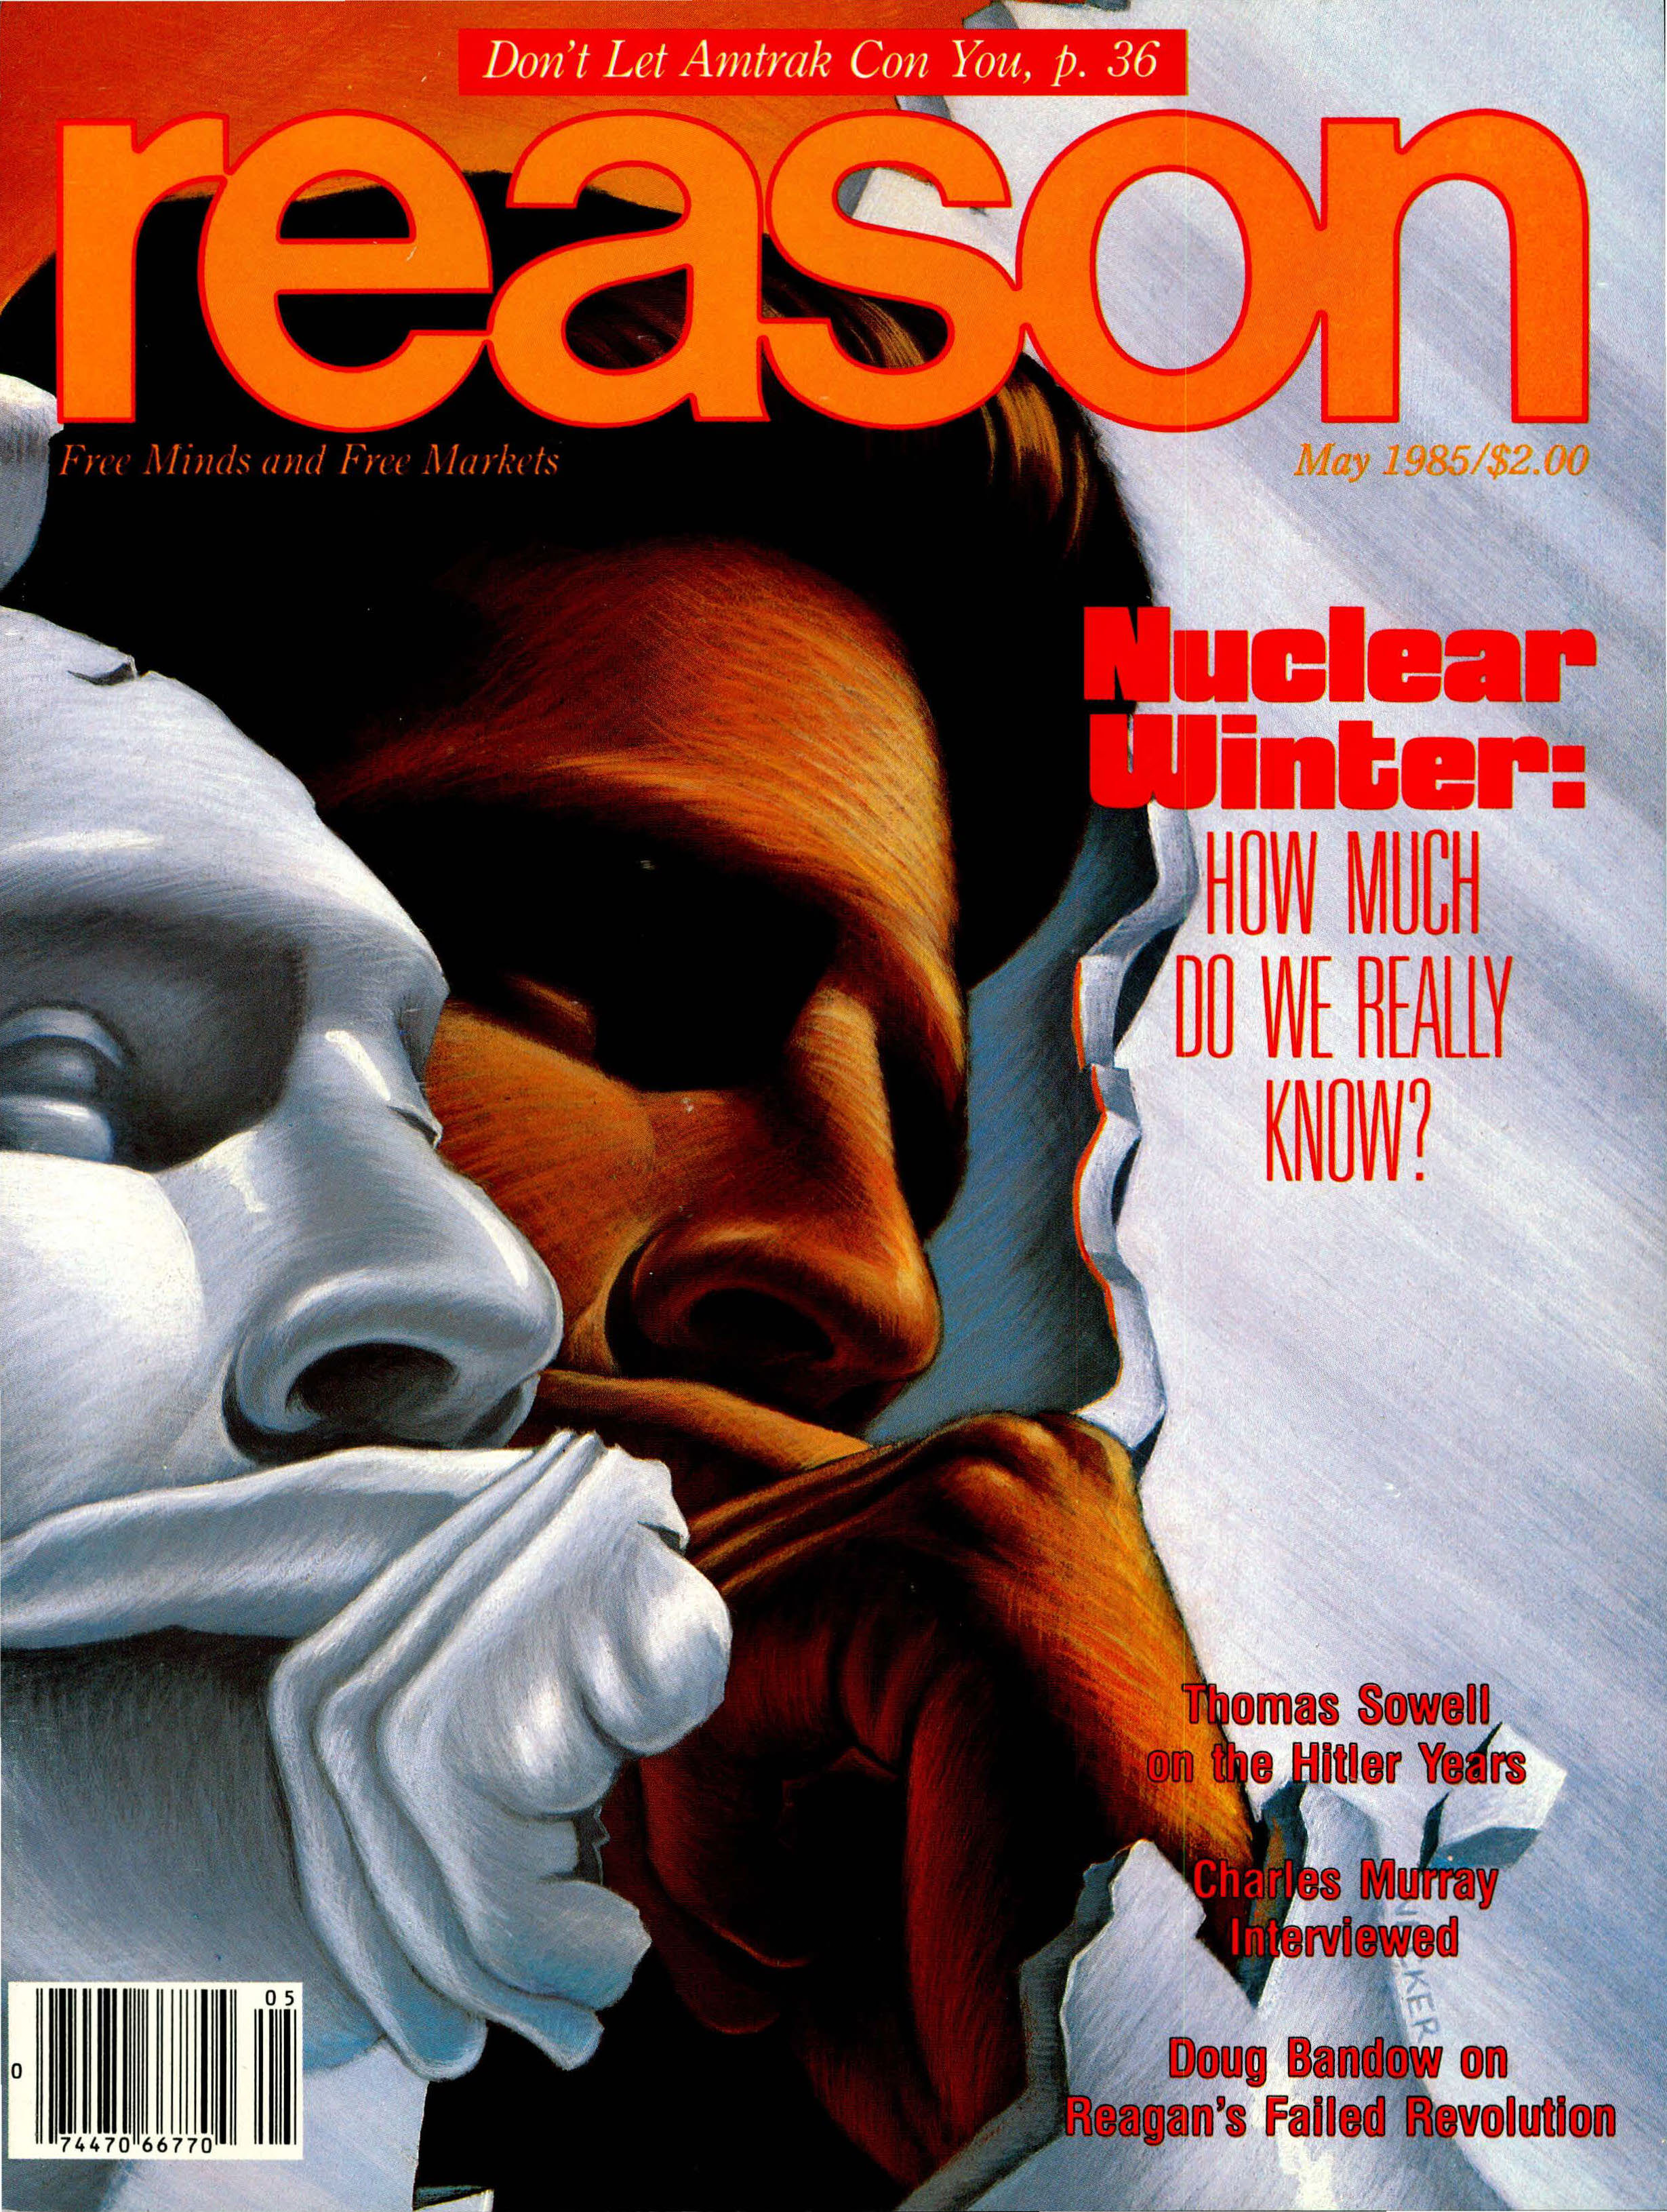 Reason Magazine, May 1985 cover image